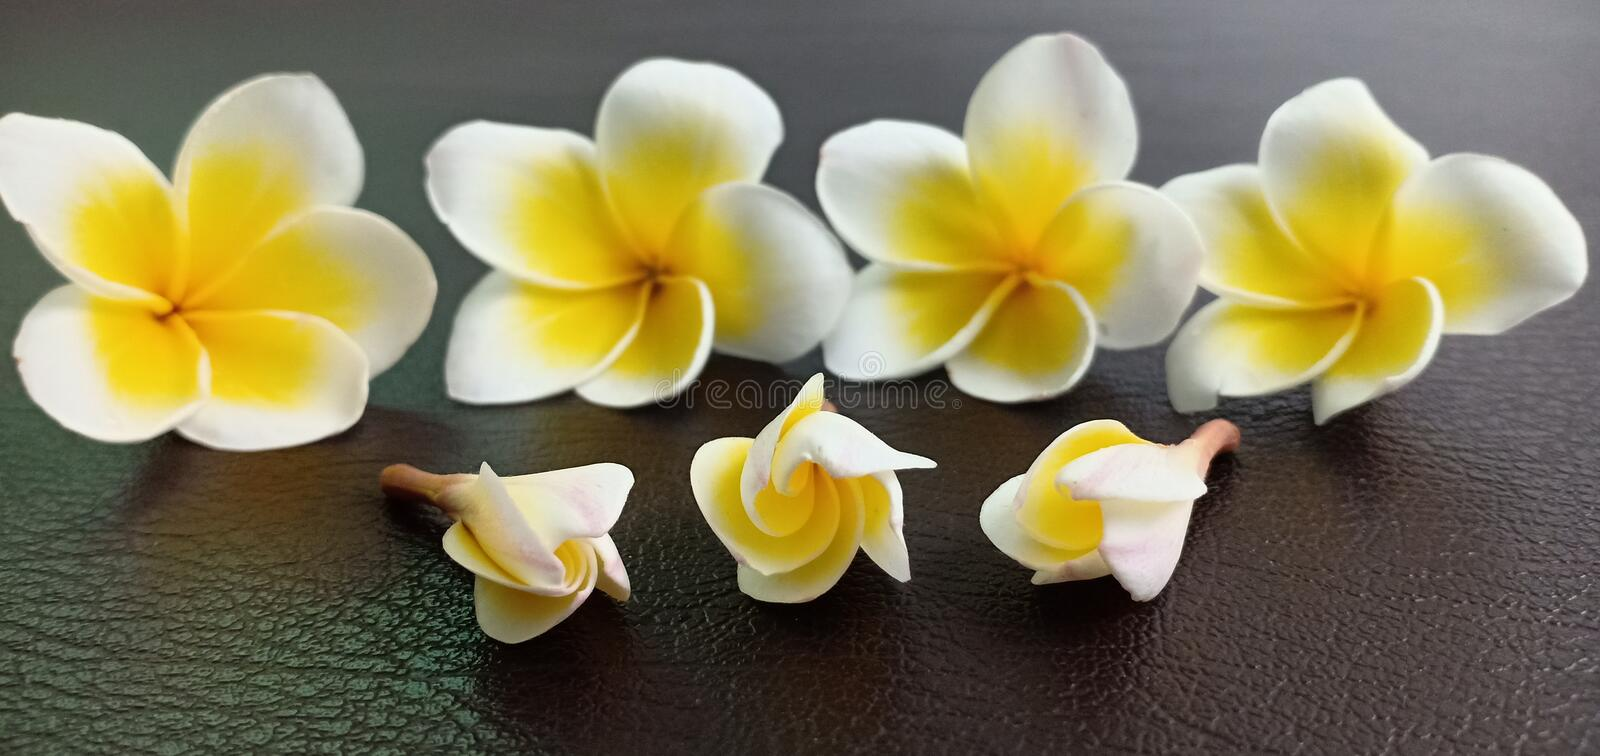 Champaka white flowers. On the leather floor stock images